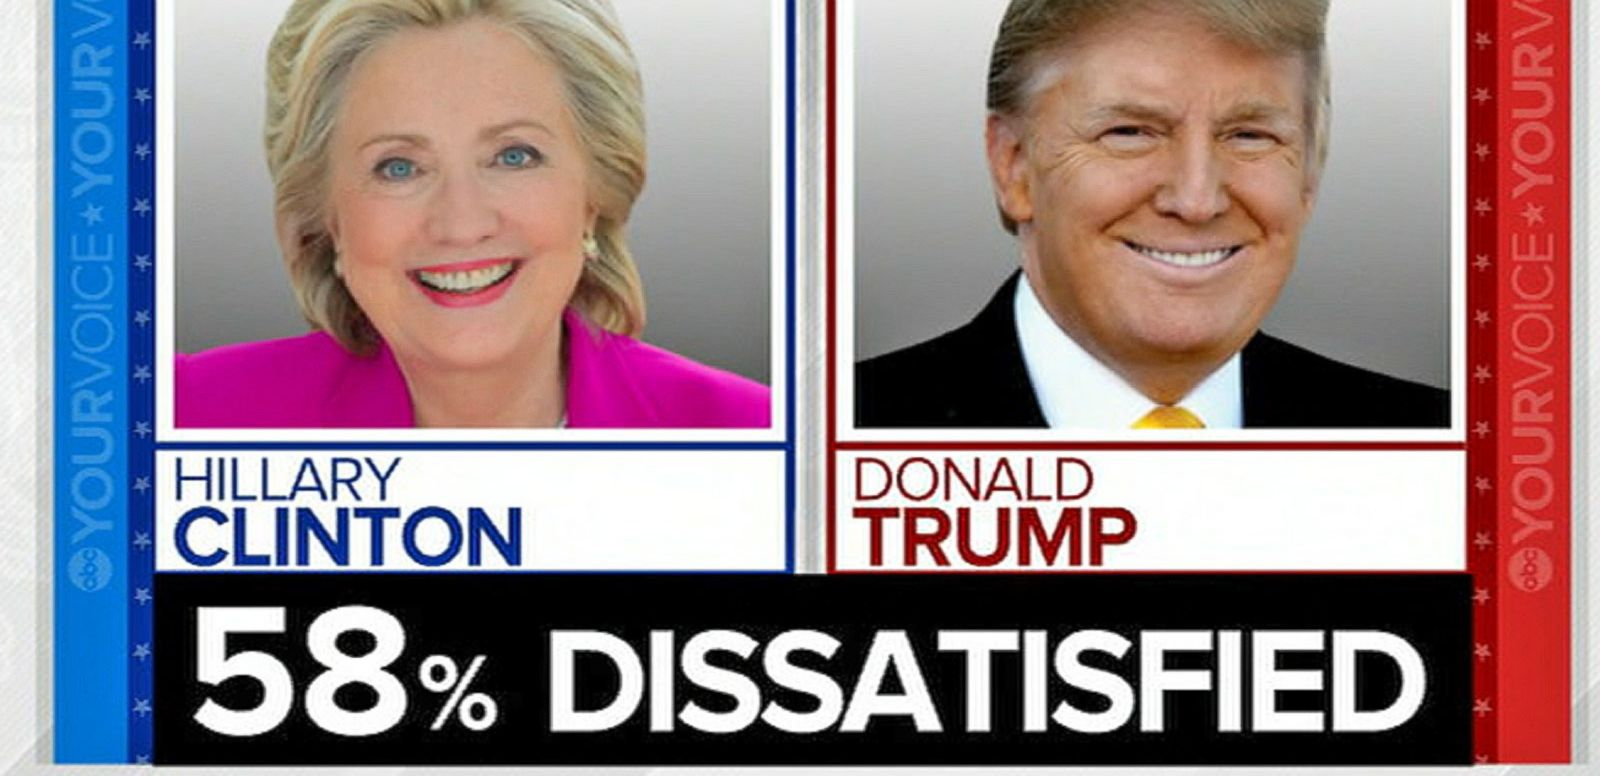 VIDEO: 58% of Registered Voters 'Dissatisfied' with Choice Between Trump and Clinton